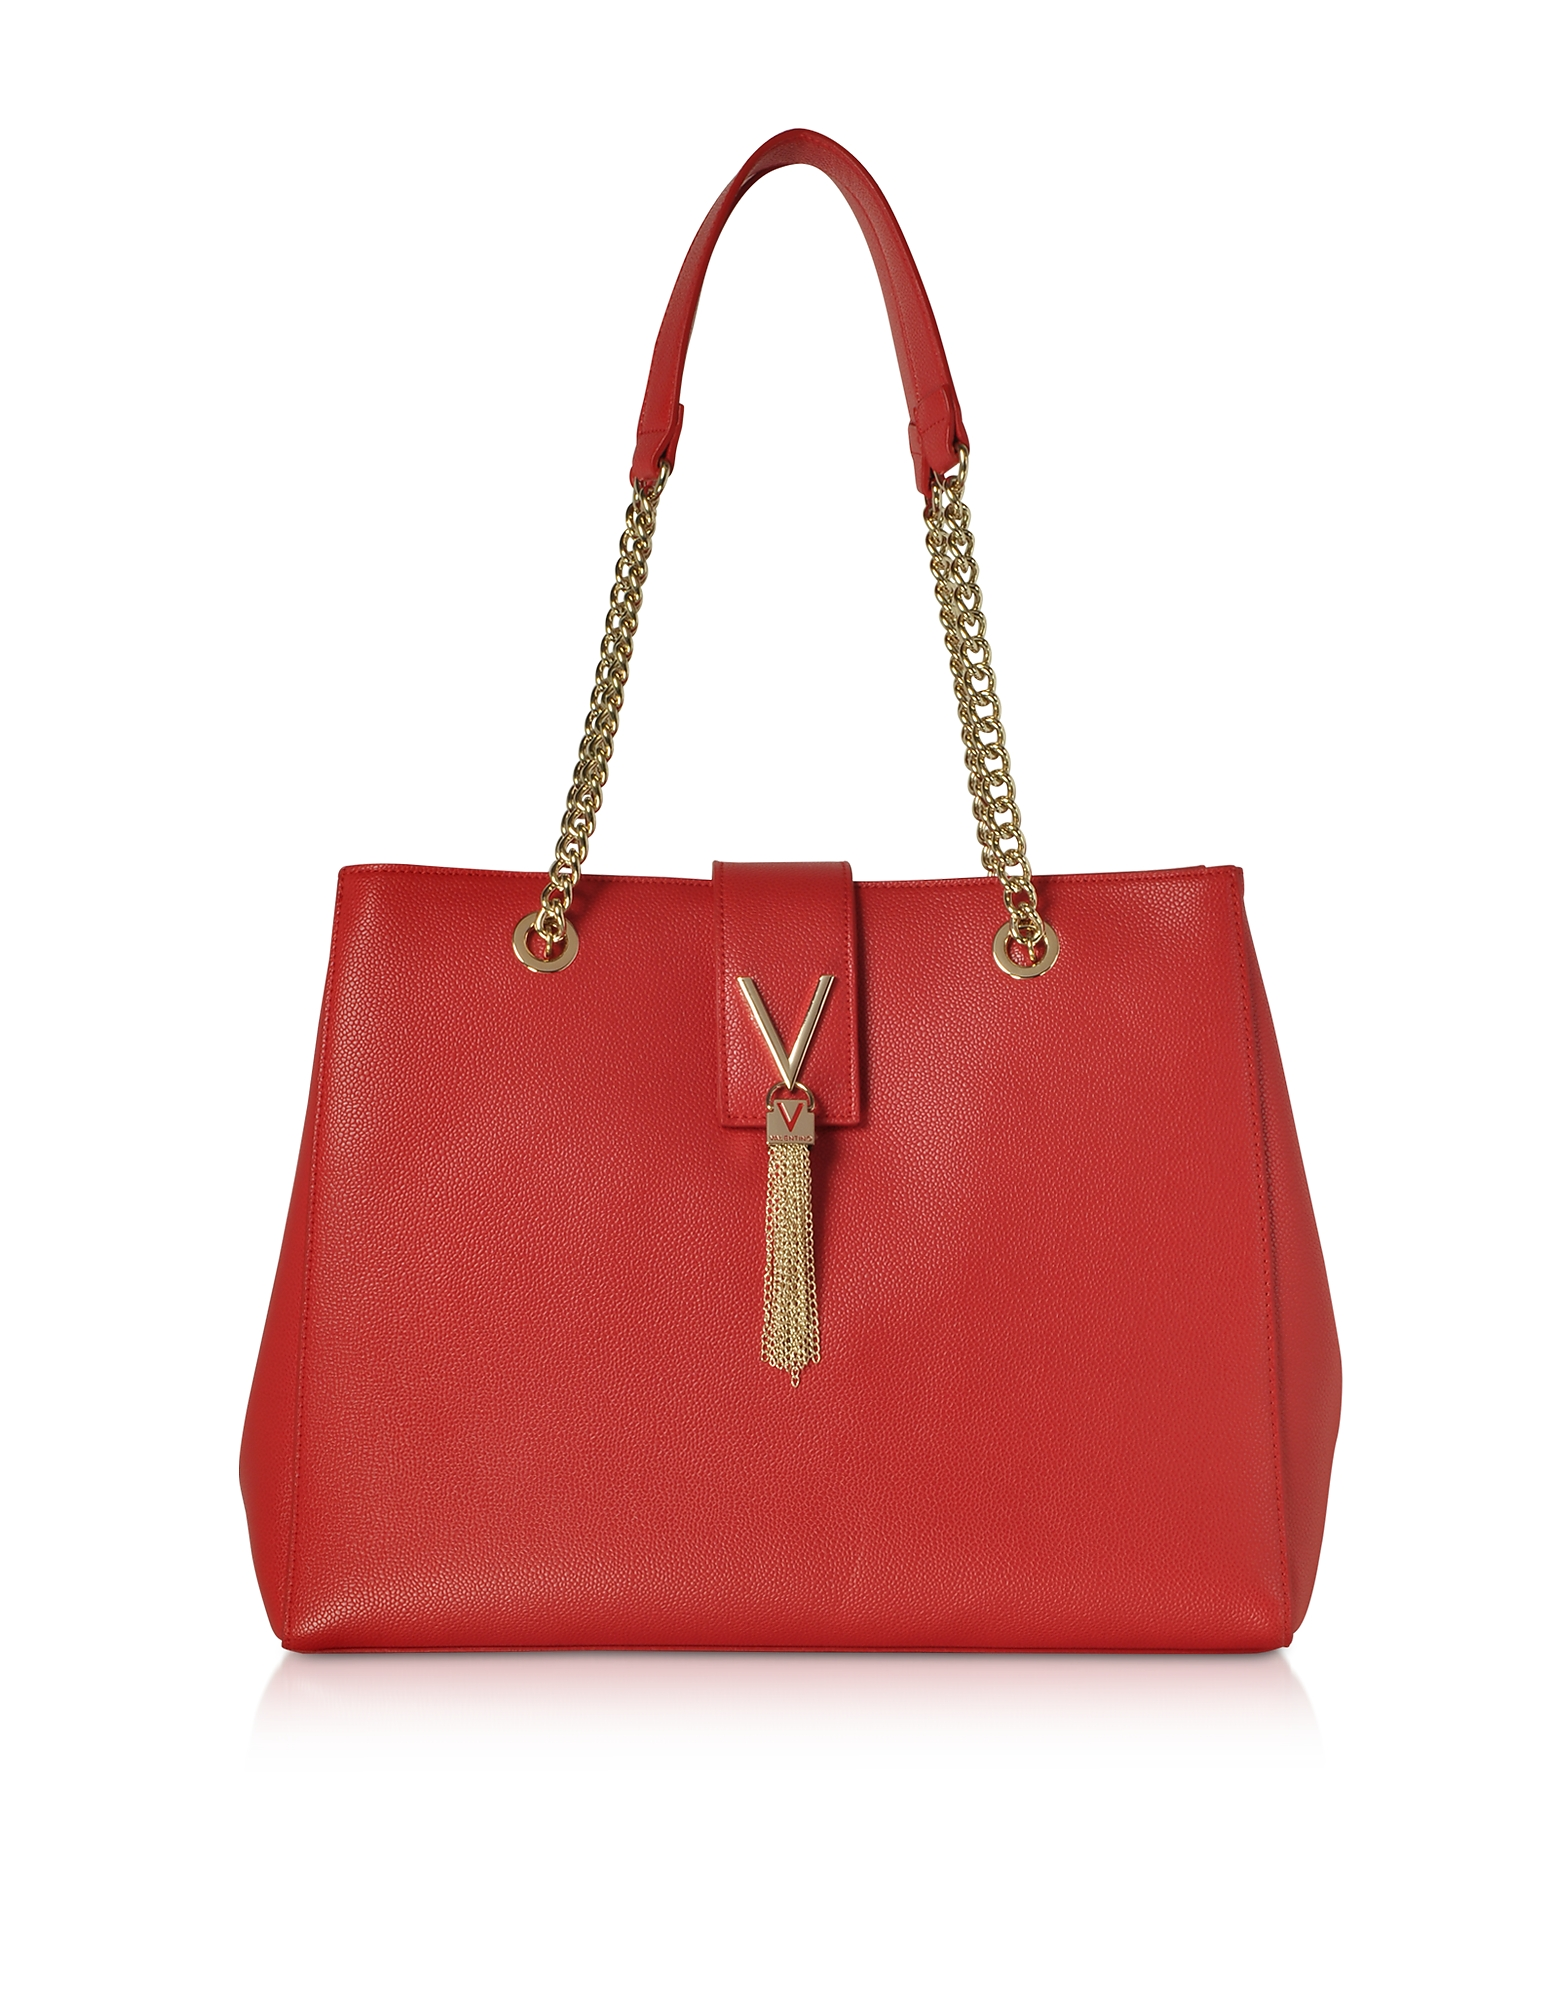 VALENTINO BY MARIO VALENTINO Lizard Embossed Eco Leather Divina Tote Bag